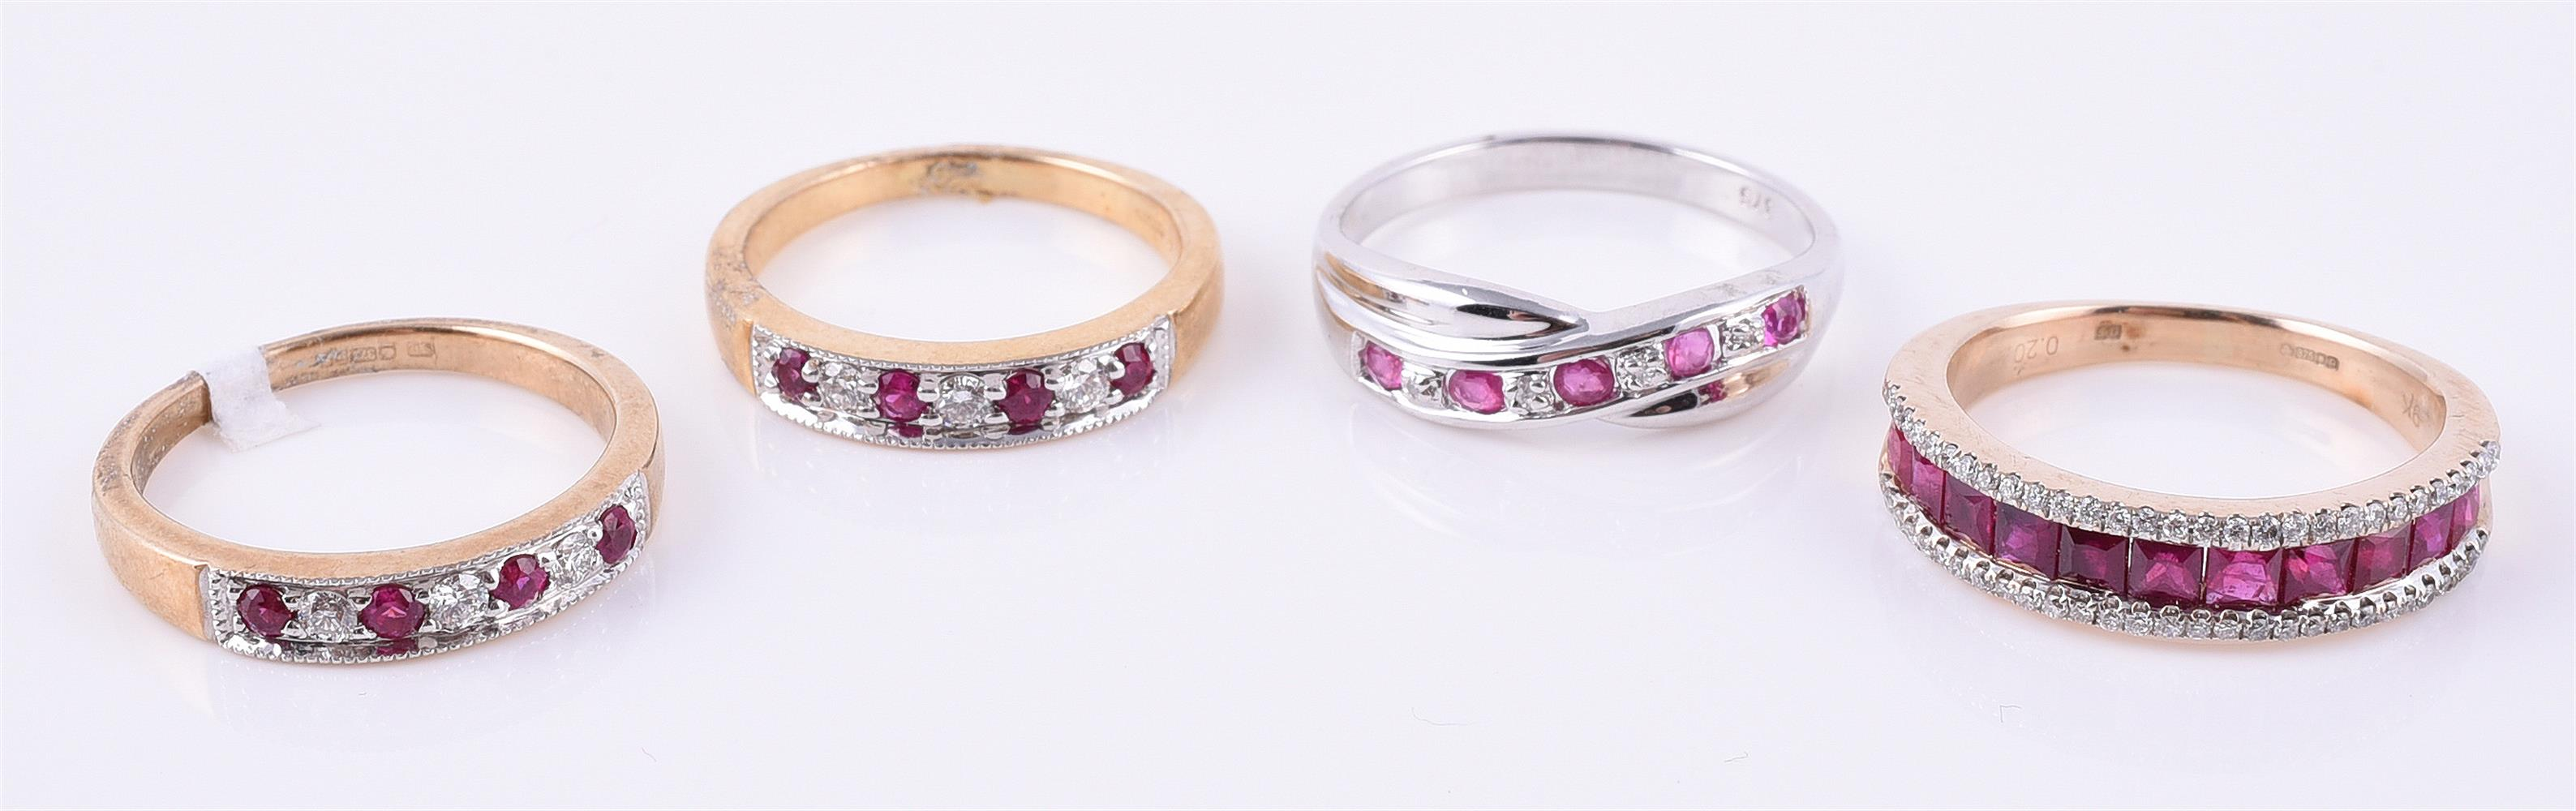 Two 9 carat gold ruby and diamond rings